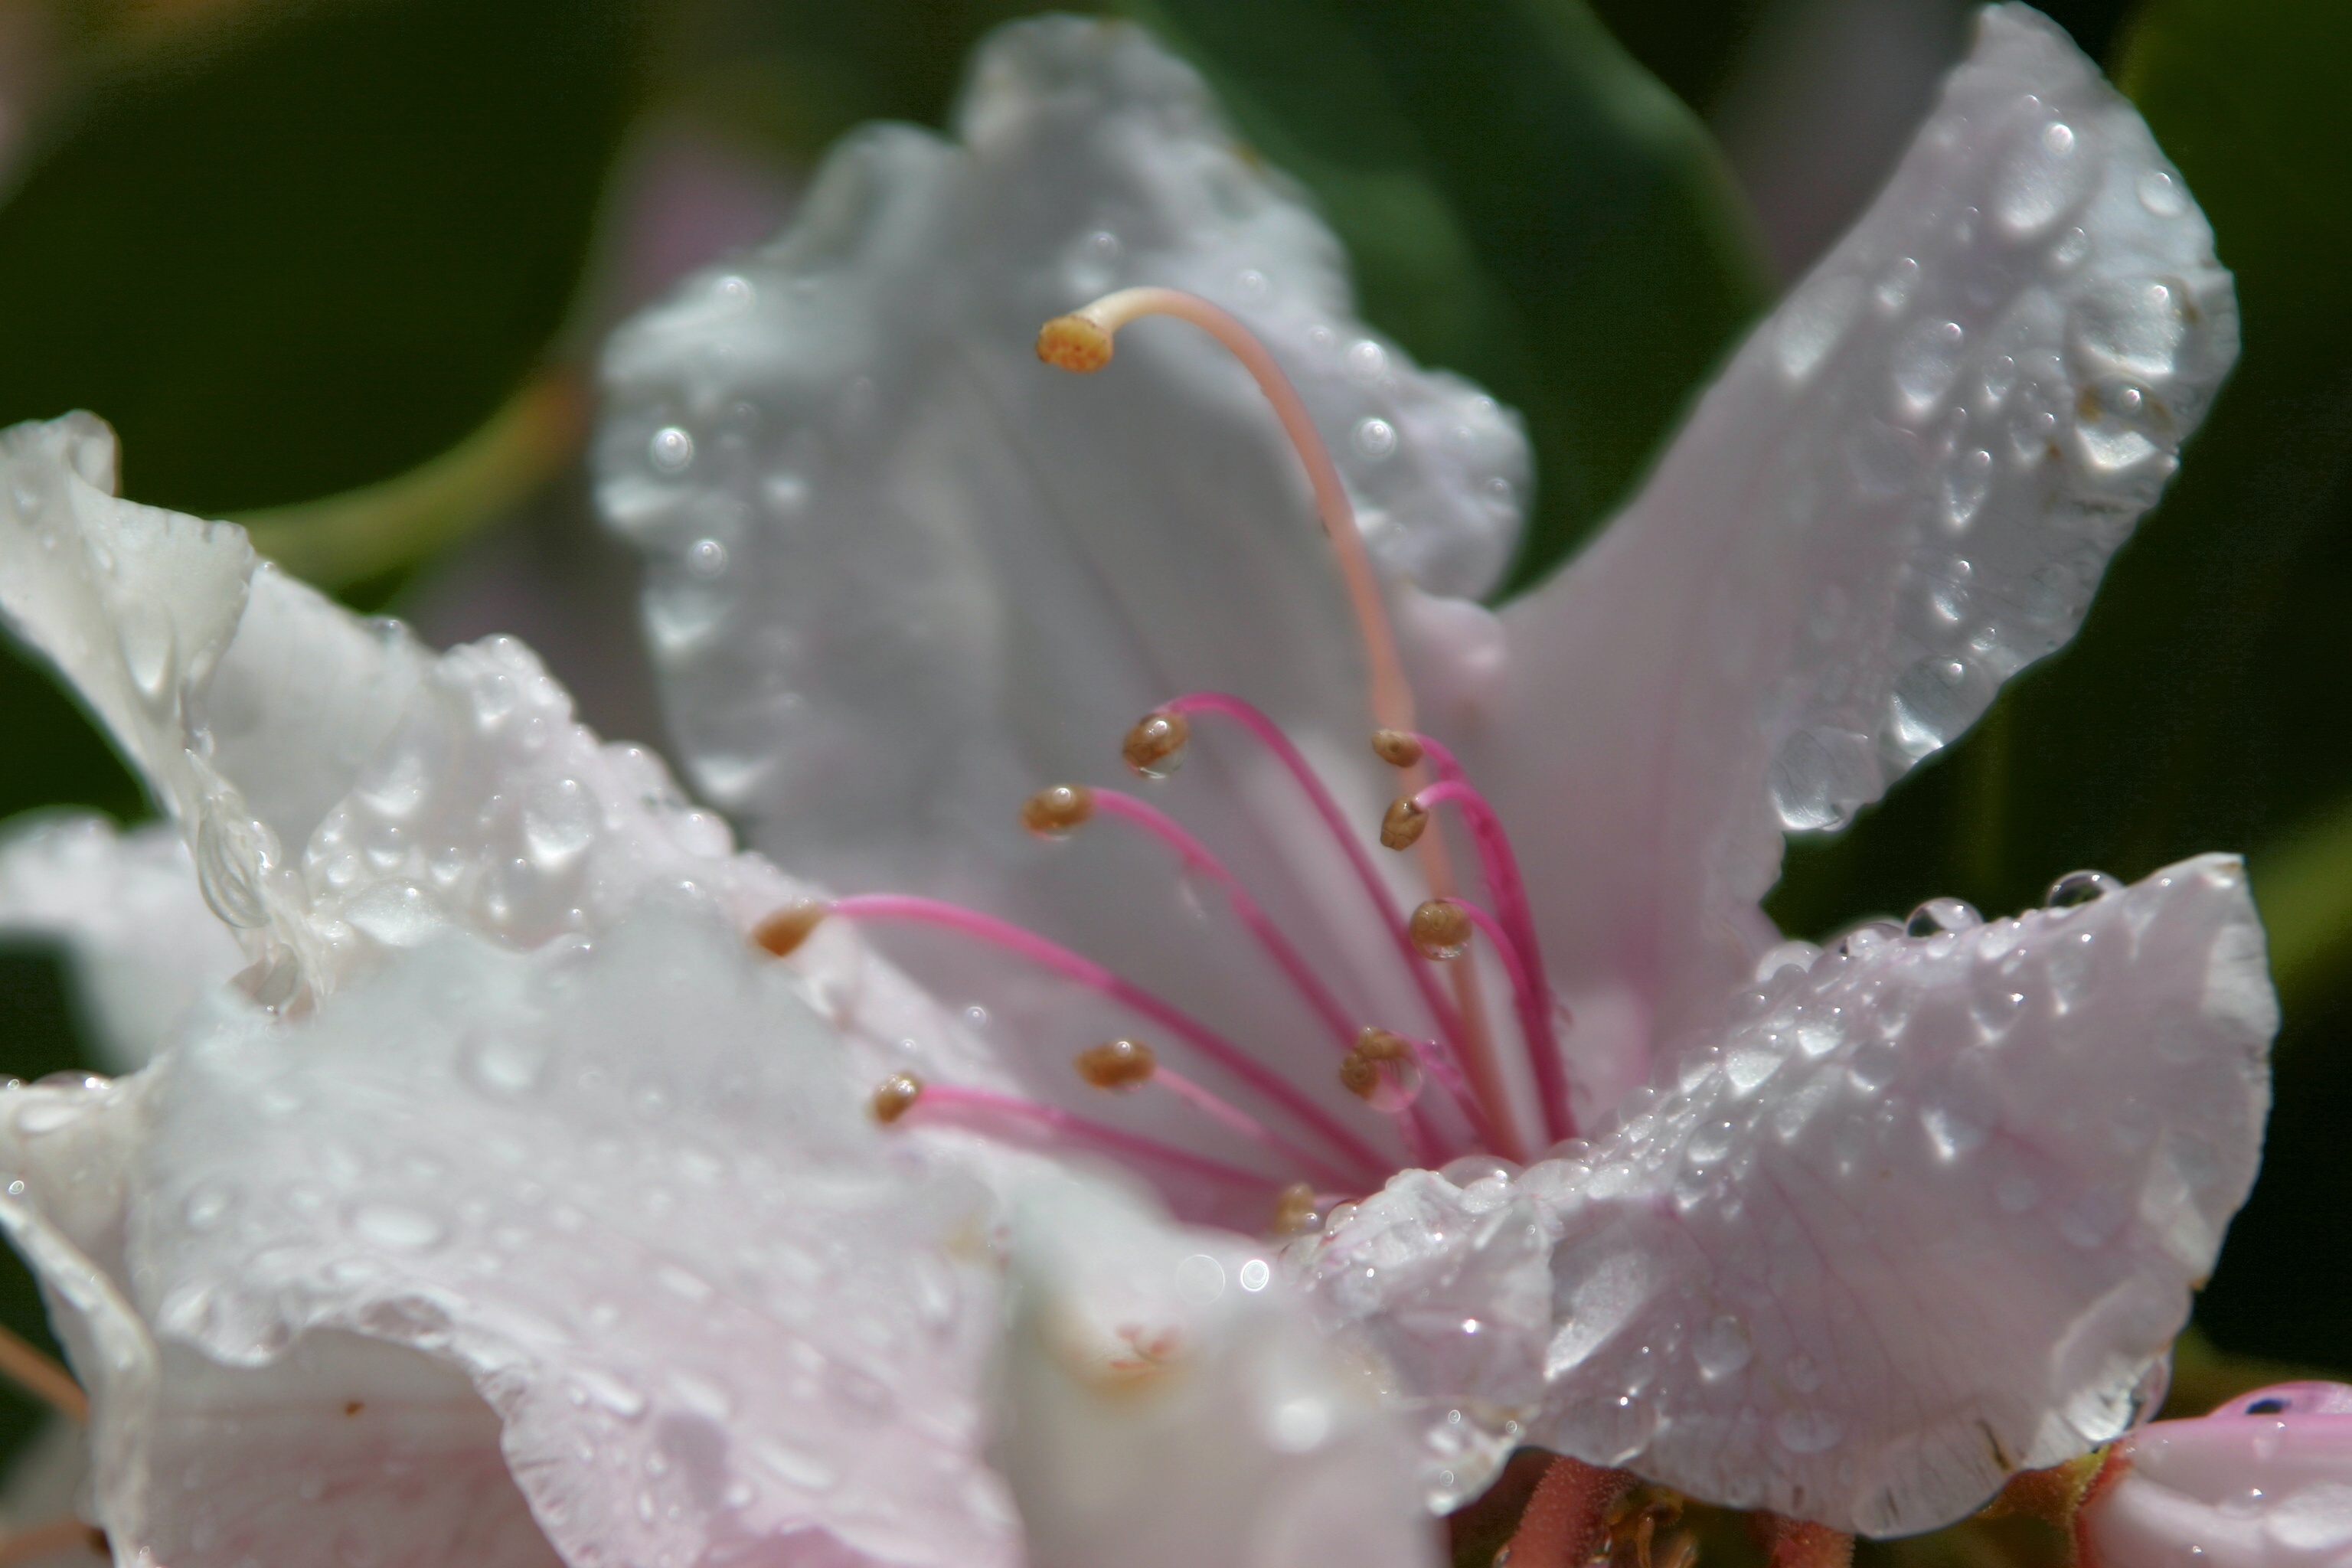 Flower after a mid-day rain